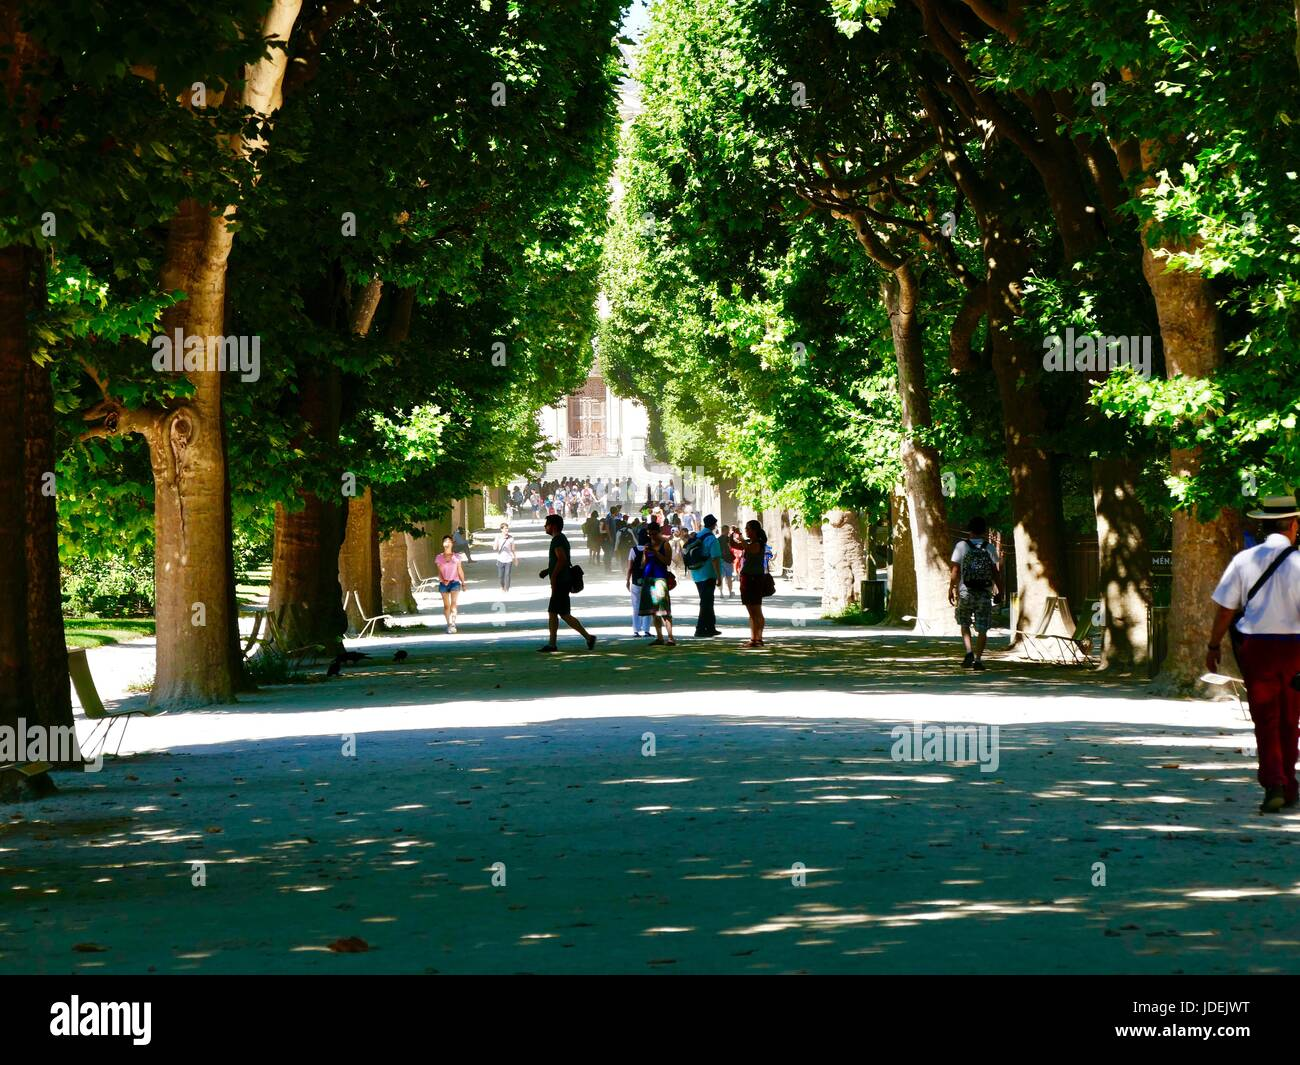 Visitors kicking up dust on path lined with leafy Plane trees on trip to Jardin des Plantes during a heat wave, - Stock Image